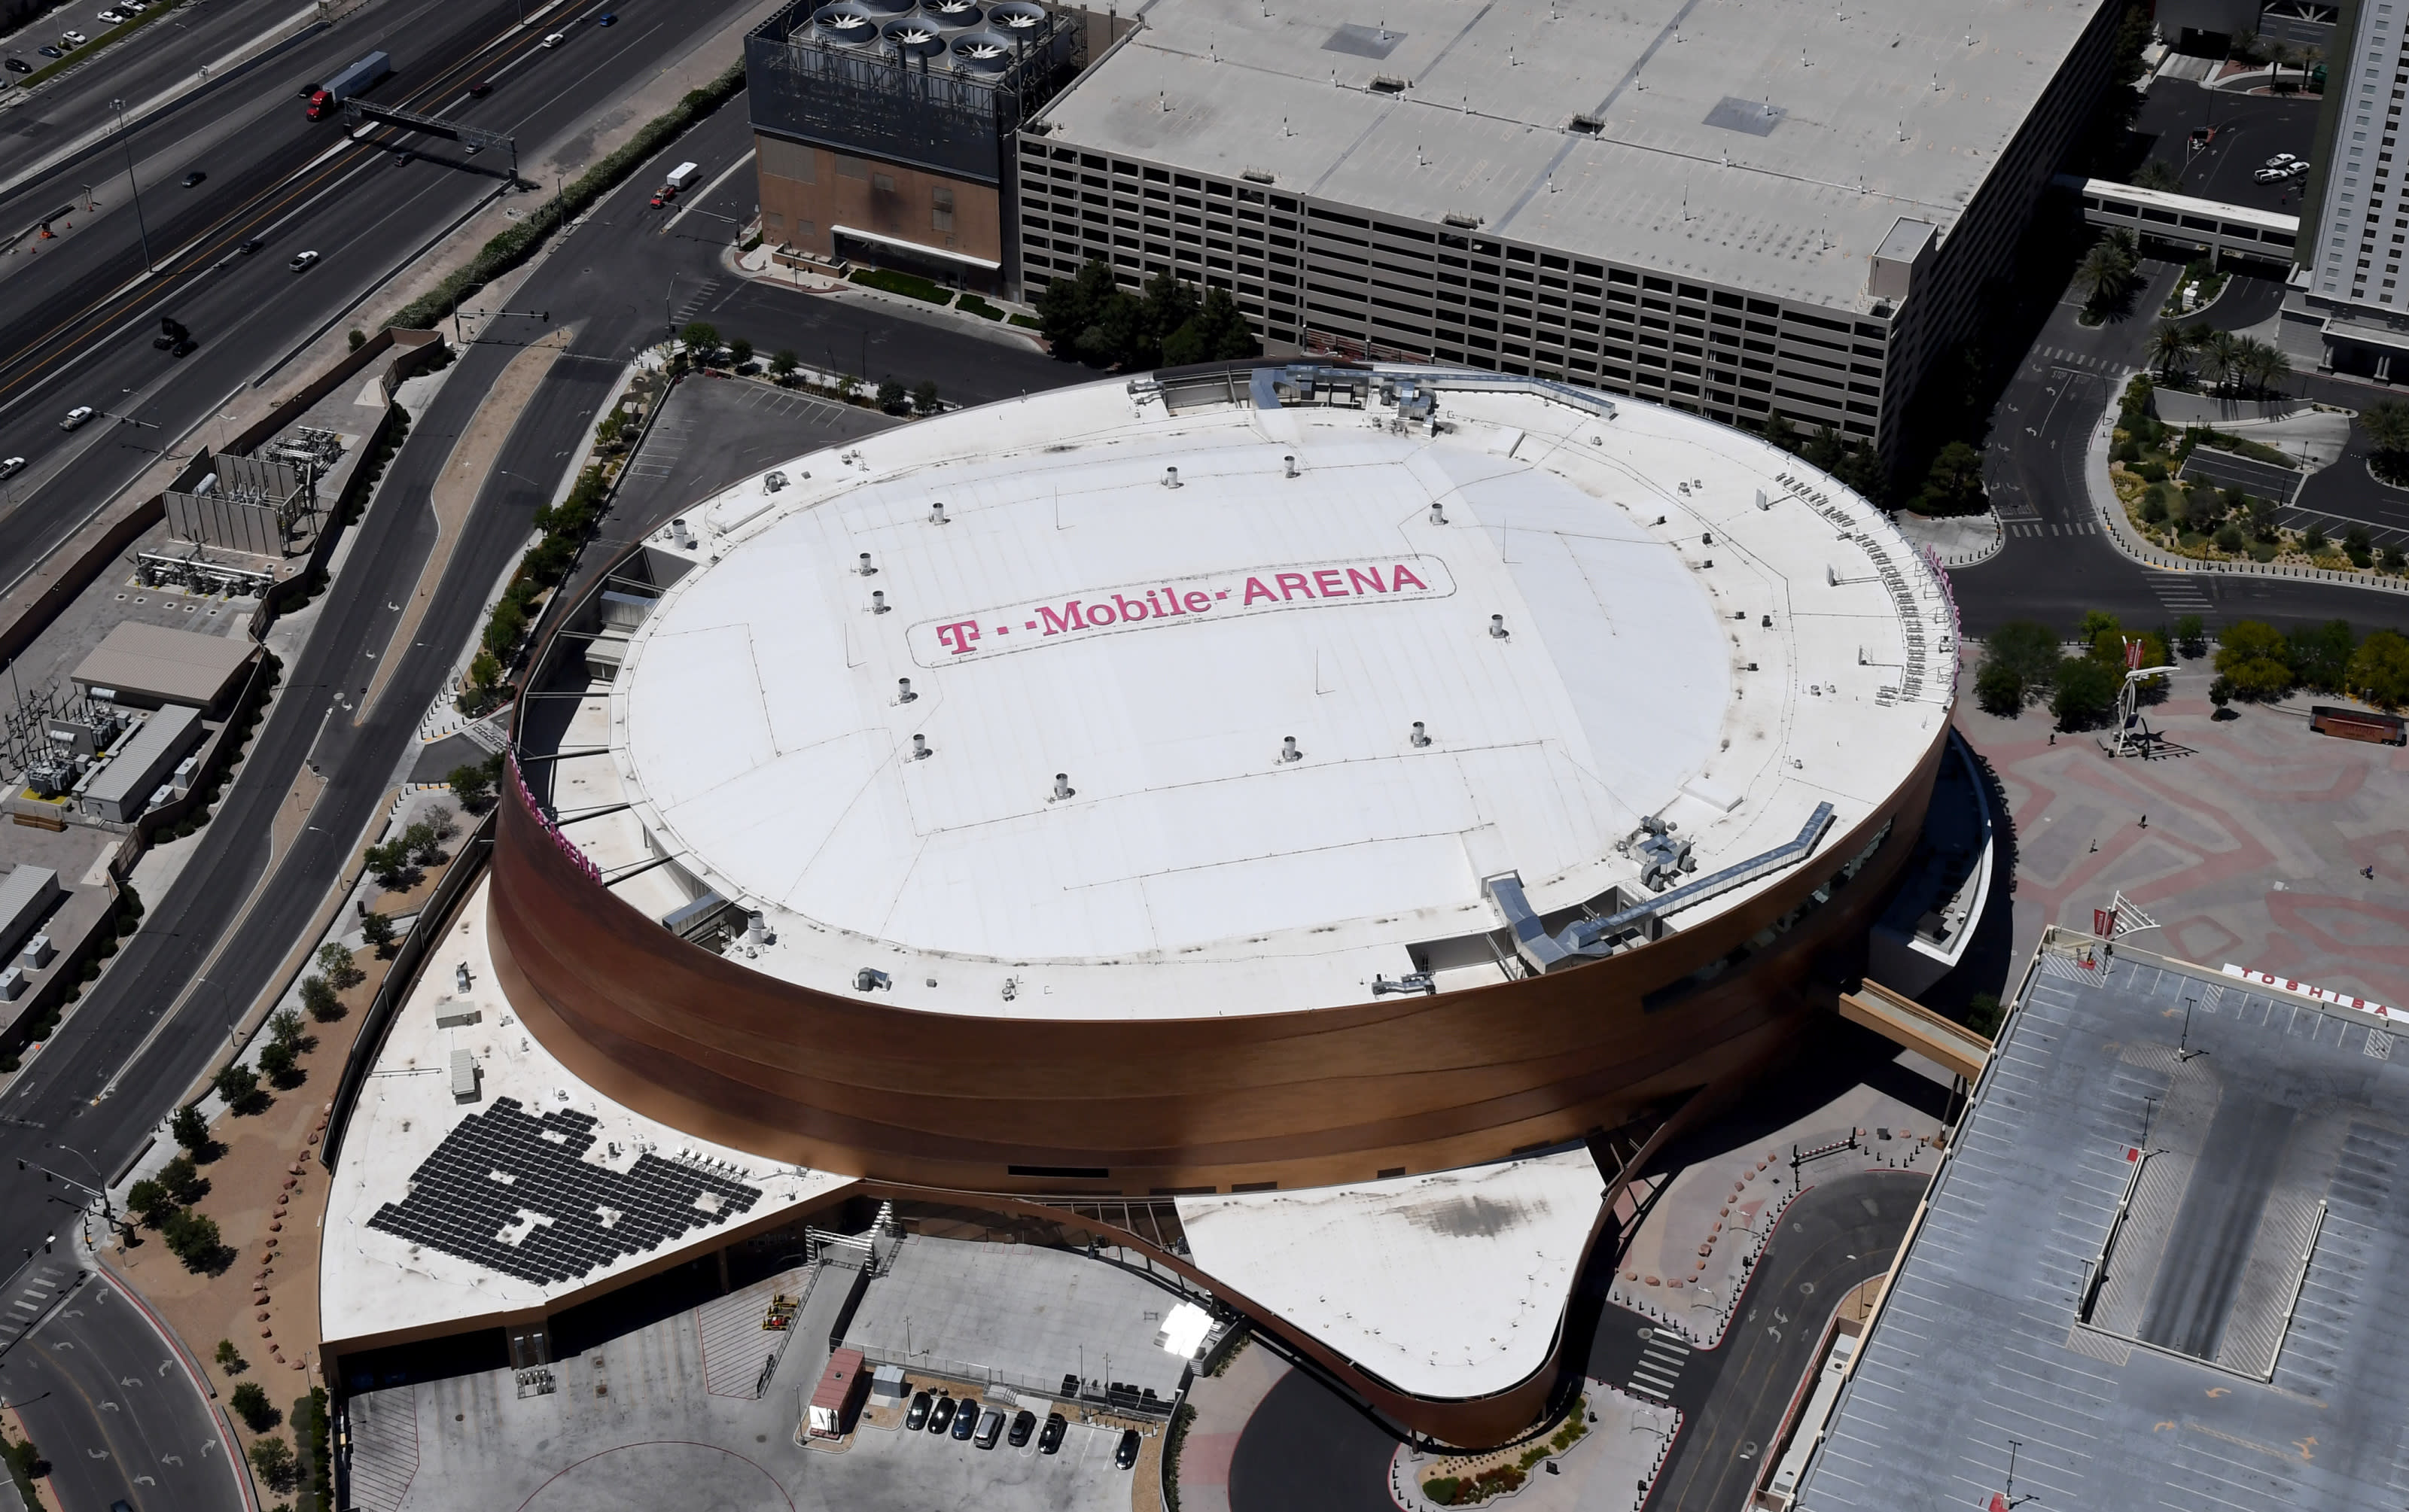 An aerial view shows T-Mobile Arena, home of the NHL's Vegas Golden Knights.